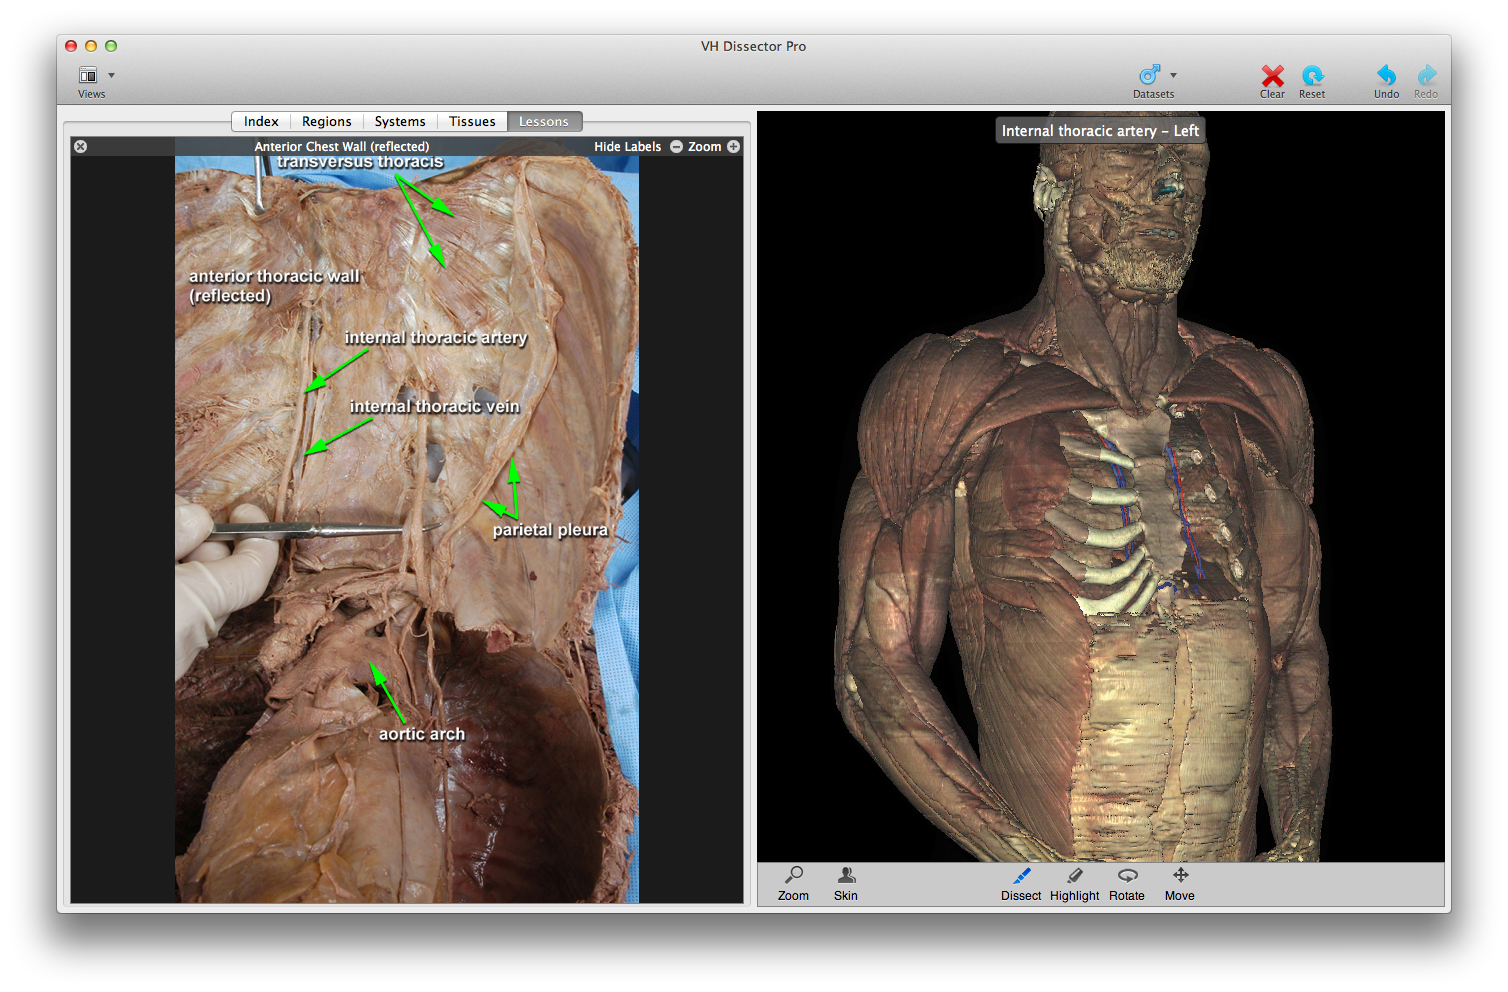 Explore the human anatomy from head to toe and from skin to bones with the Virtual Human Body.